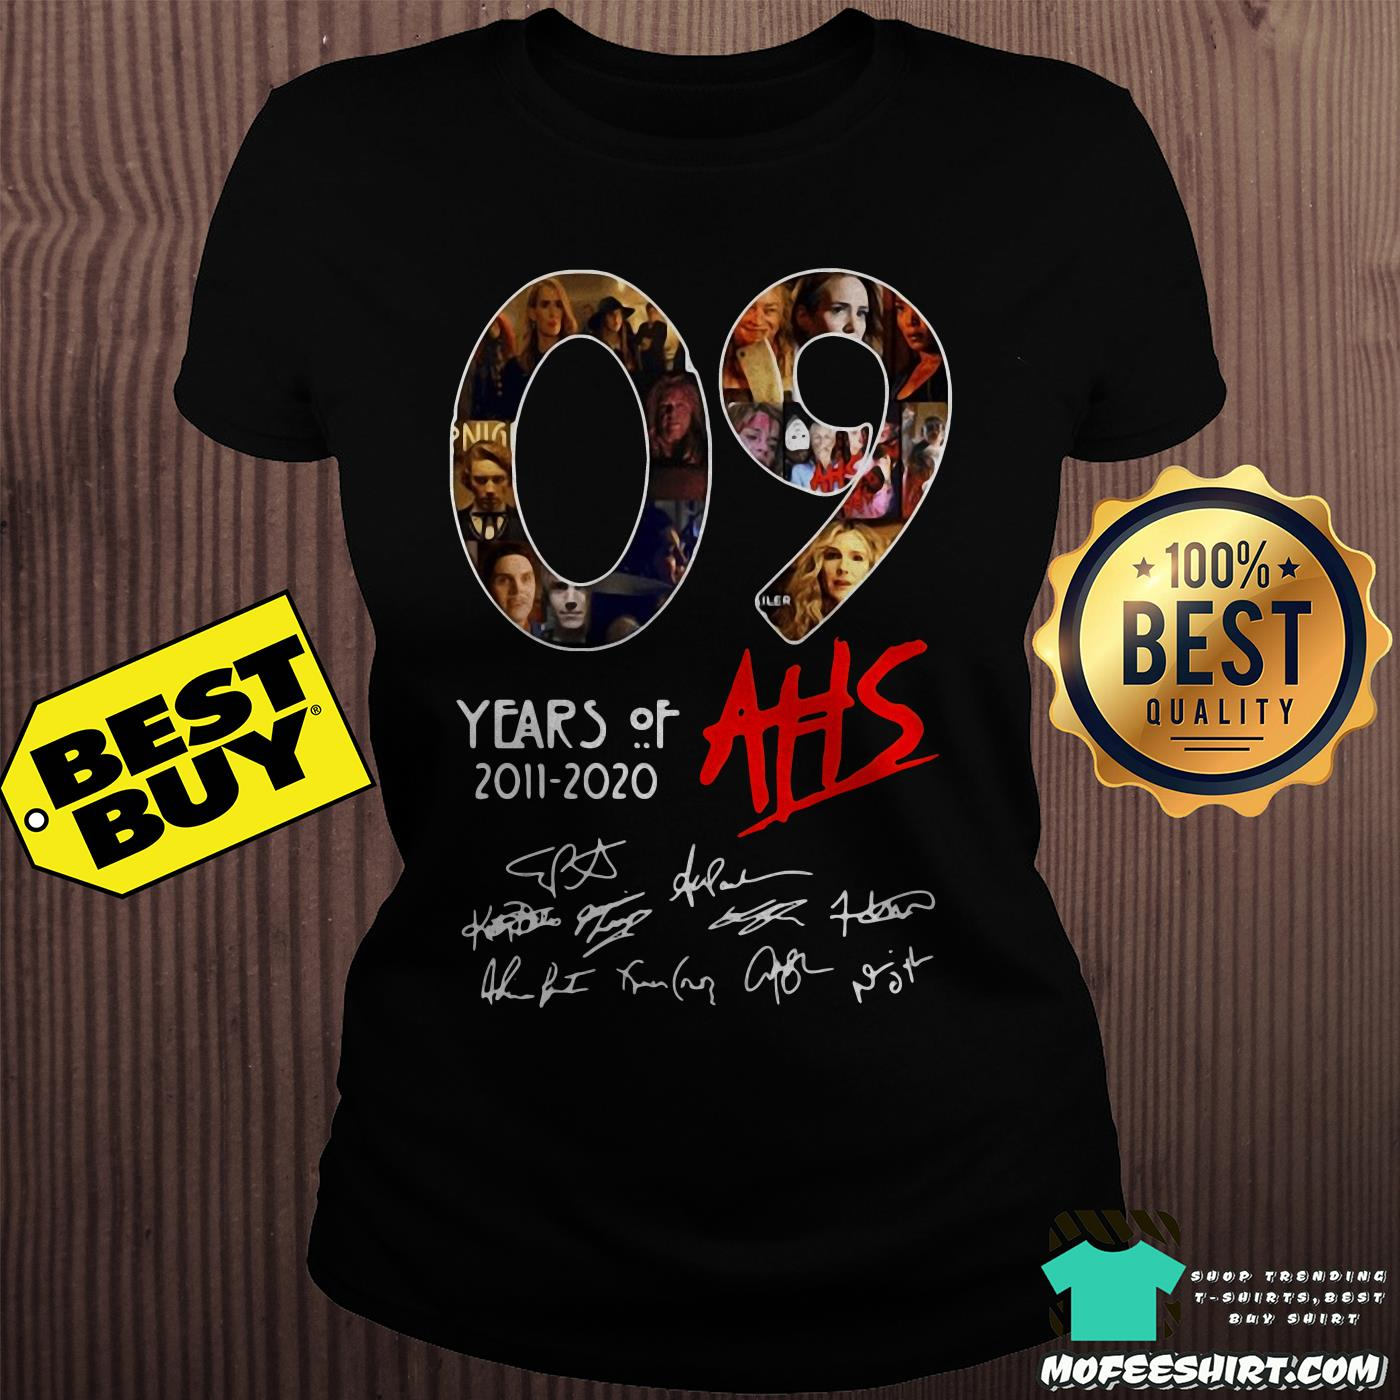 09 years of ahs 2011 2020 signatures ladies tee - 09 Years Of AHS 2011-2020 Signatures shirt